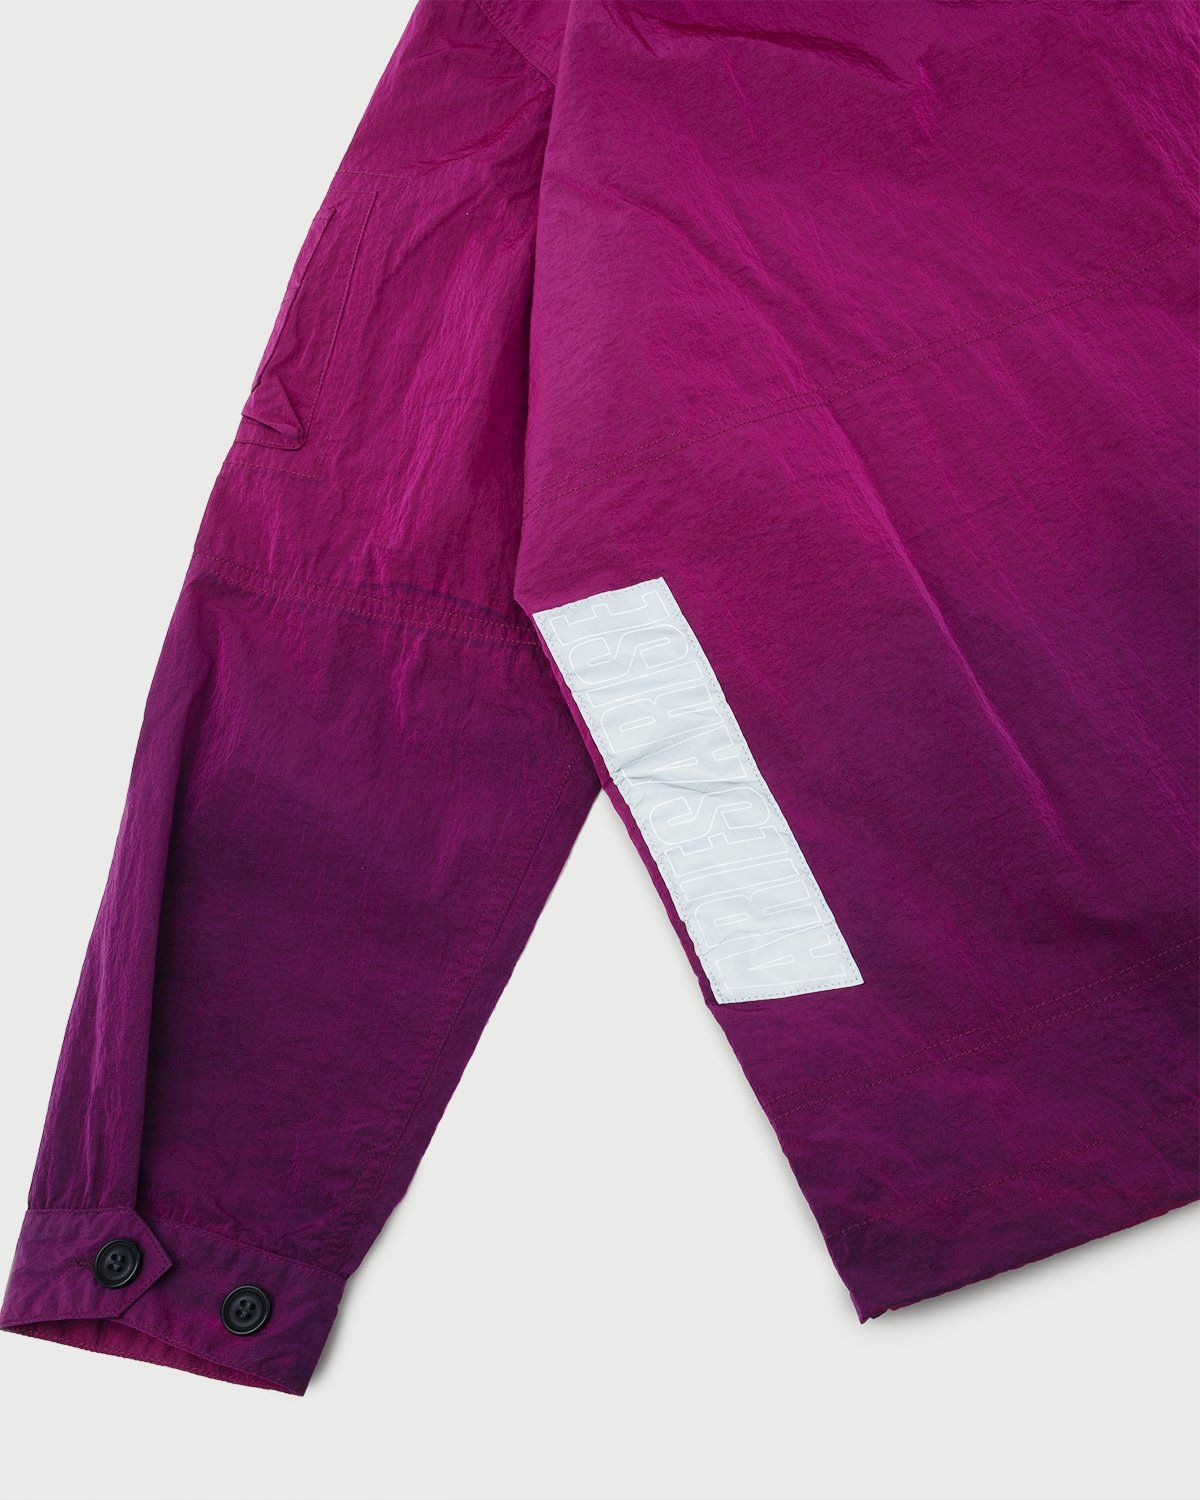 Aries — Ombre Dyed Tech Jacket Fuchsia - Image 5